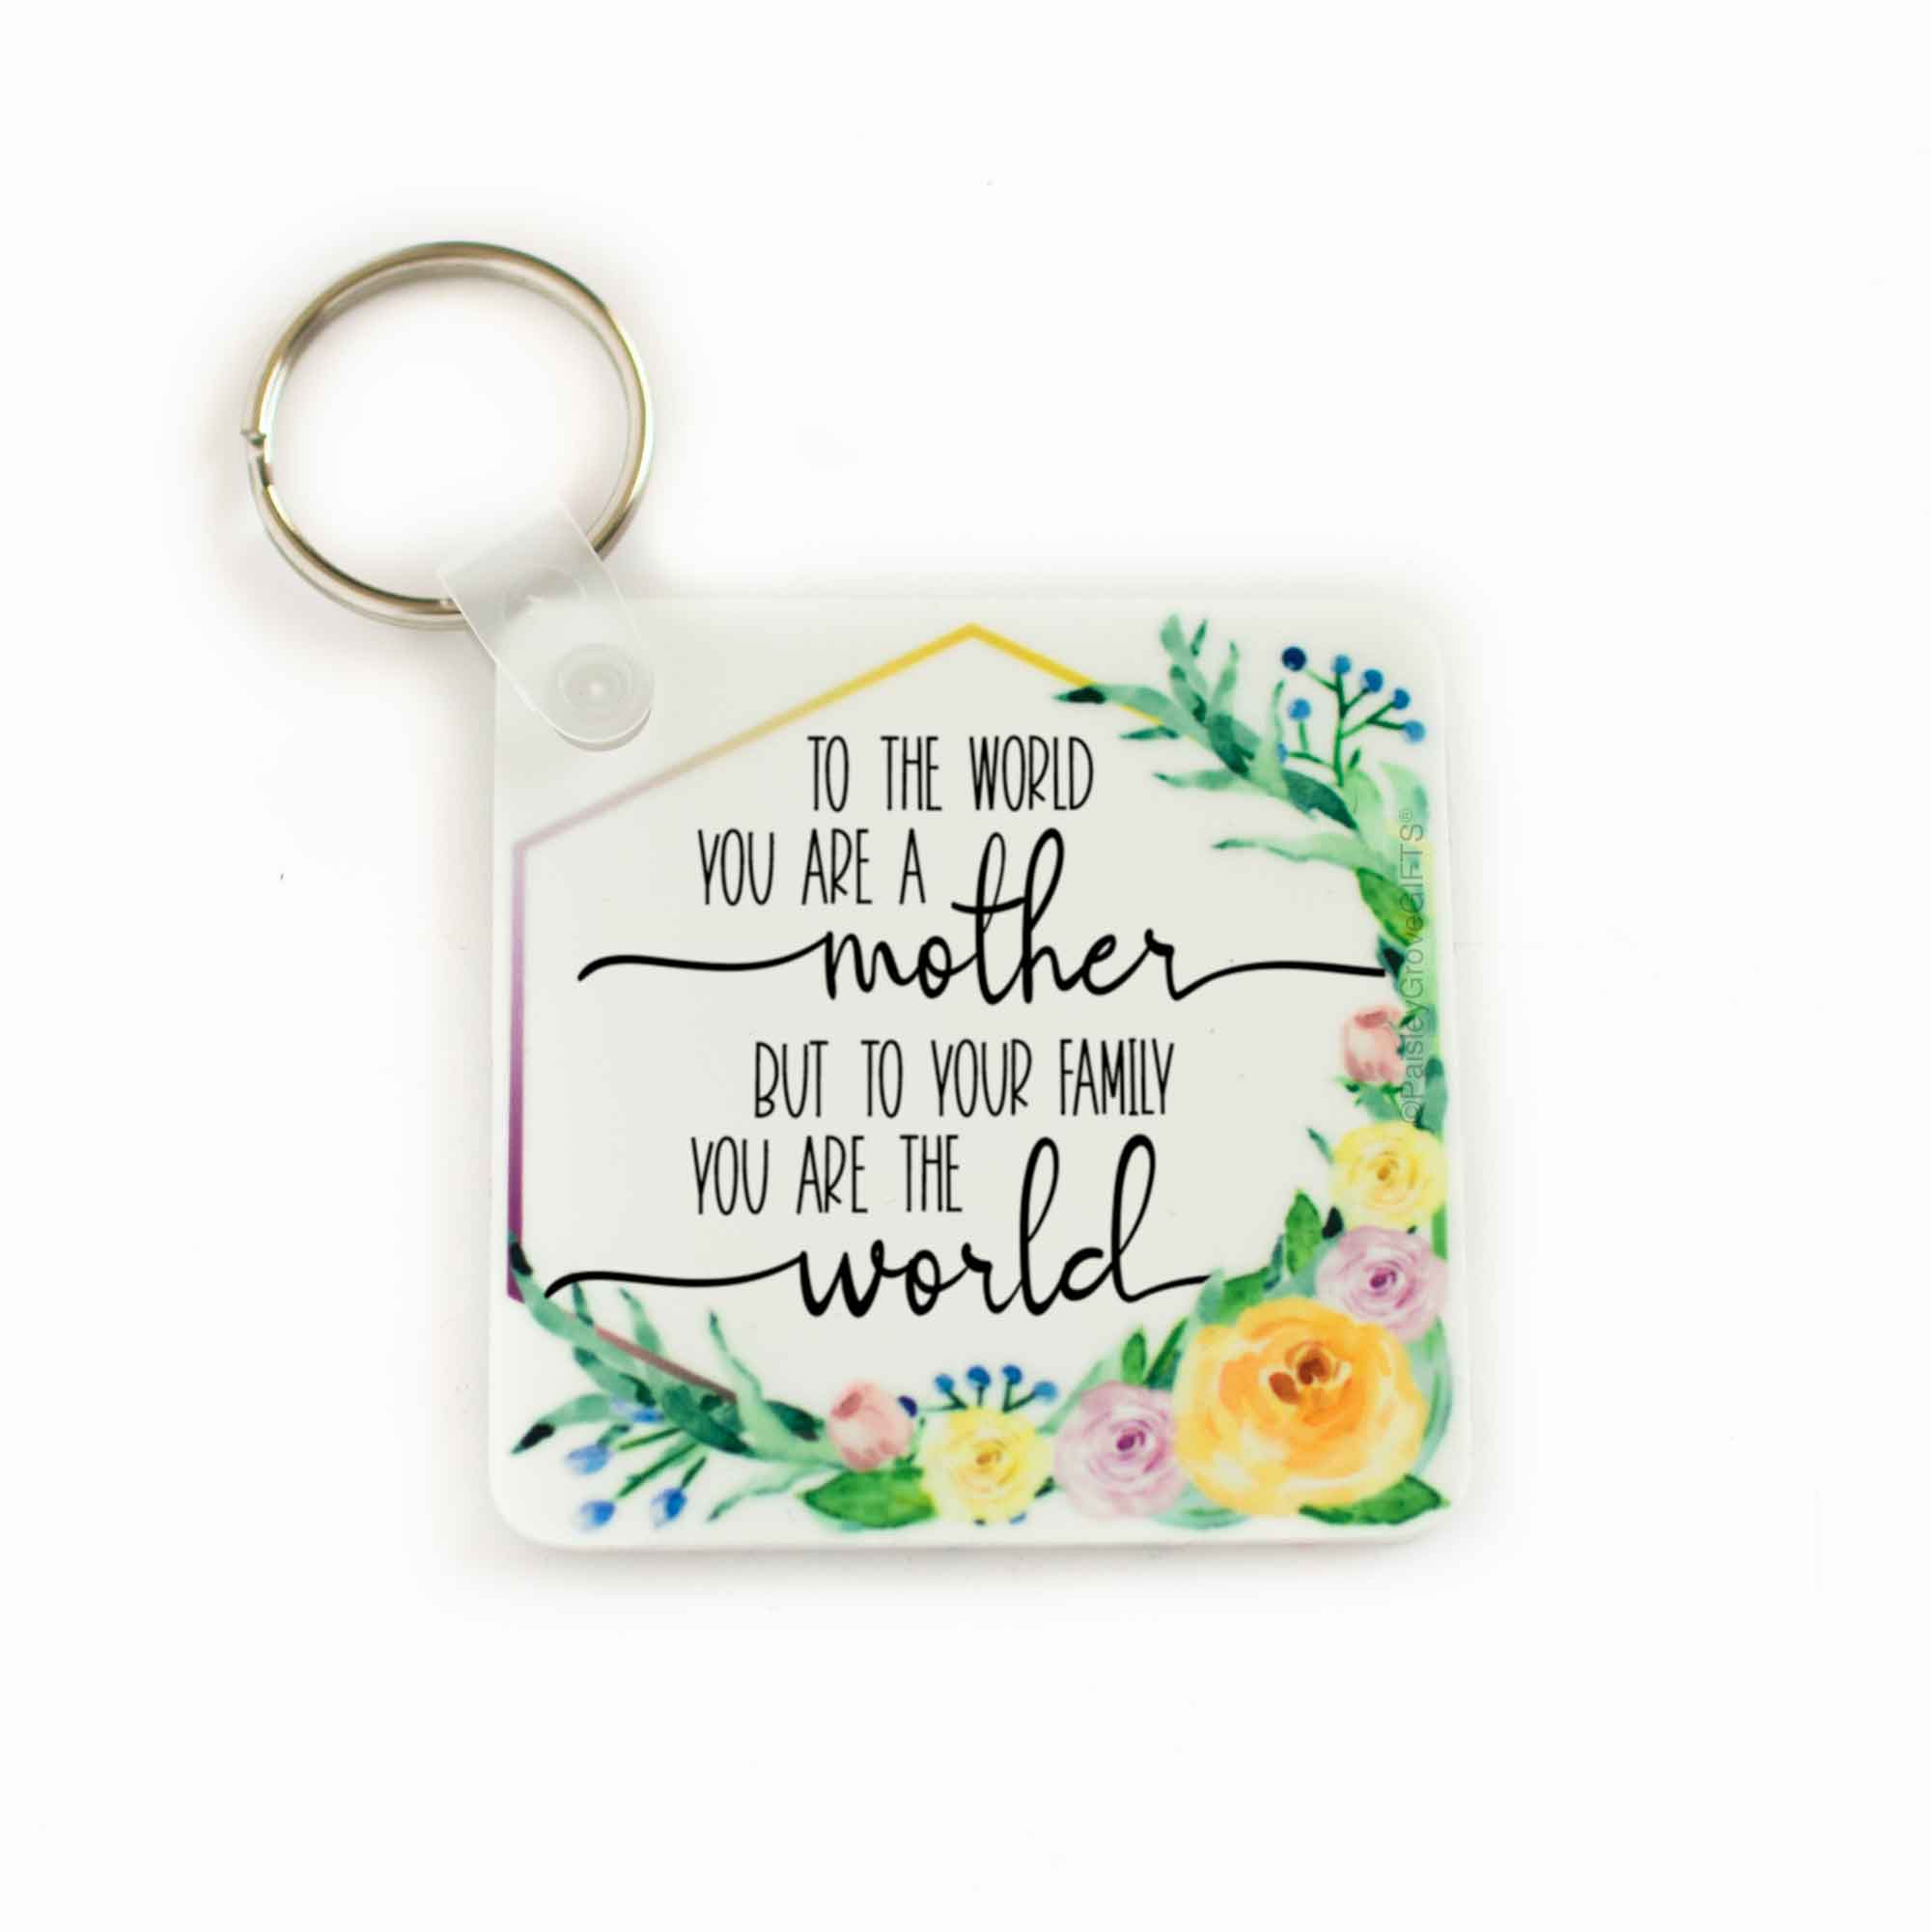 CopyrightPaisleyGroveGIFTS S041a Sentimental Mom Gift To the world you are a mother keychain with watercolor flowers